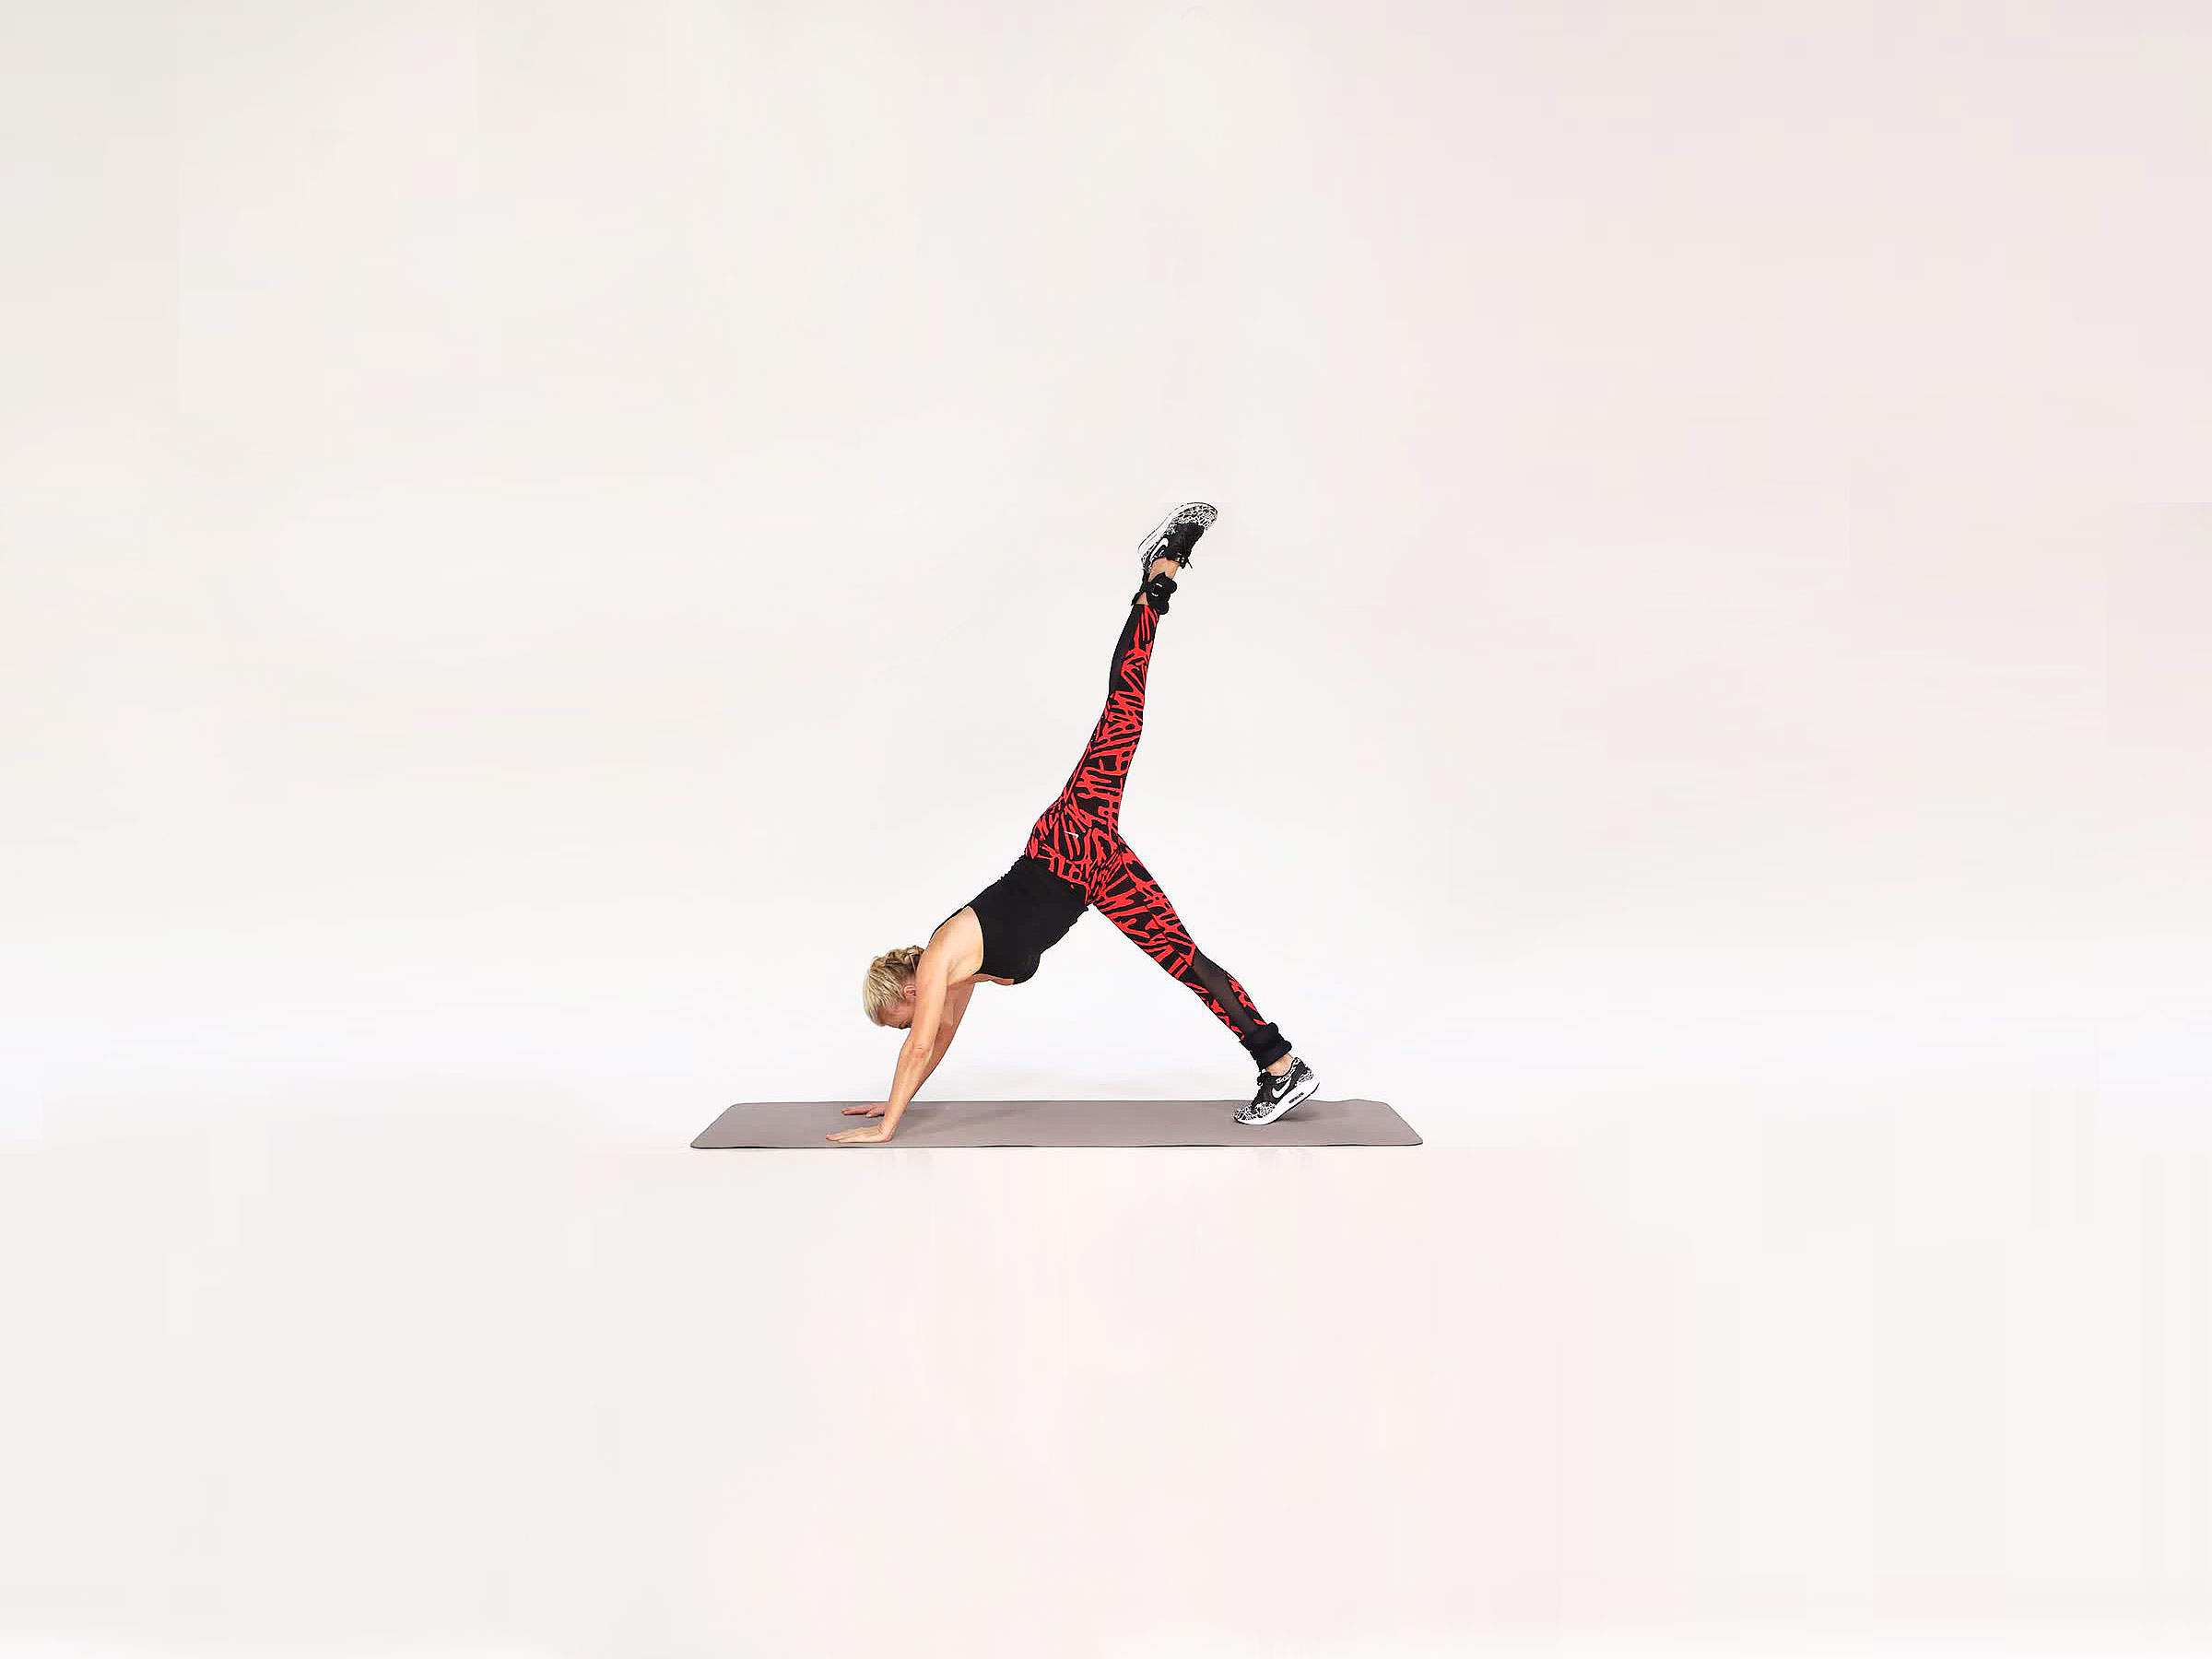 reach-back-arabesque-tracy-anderson-video